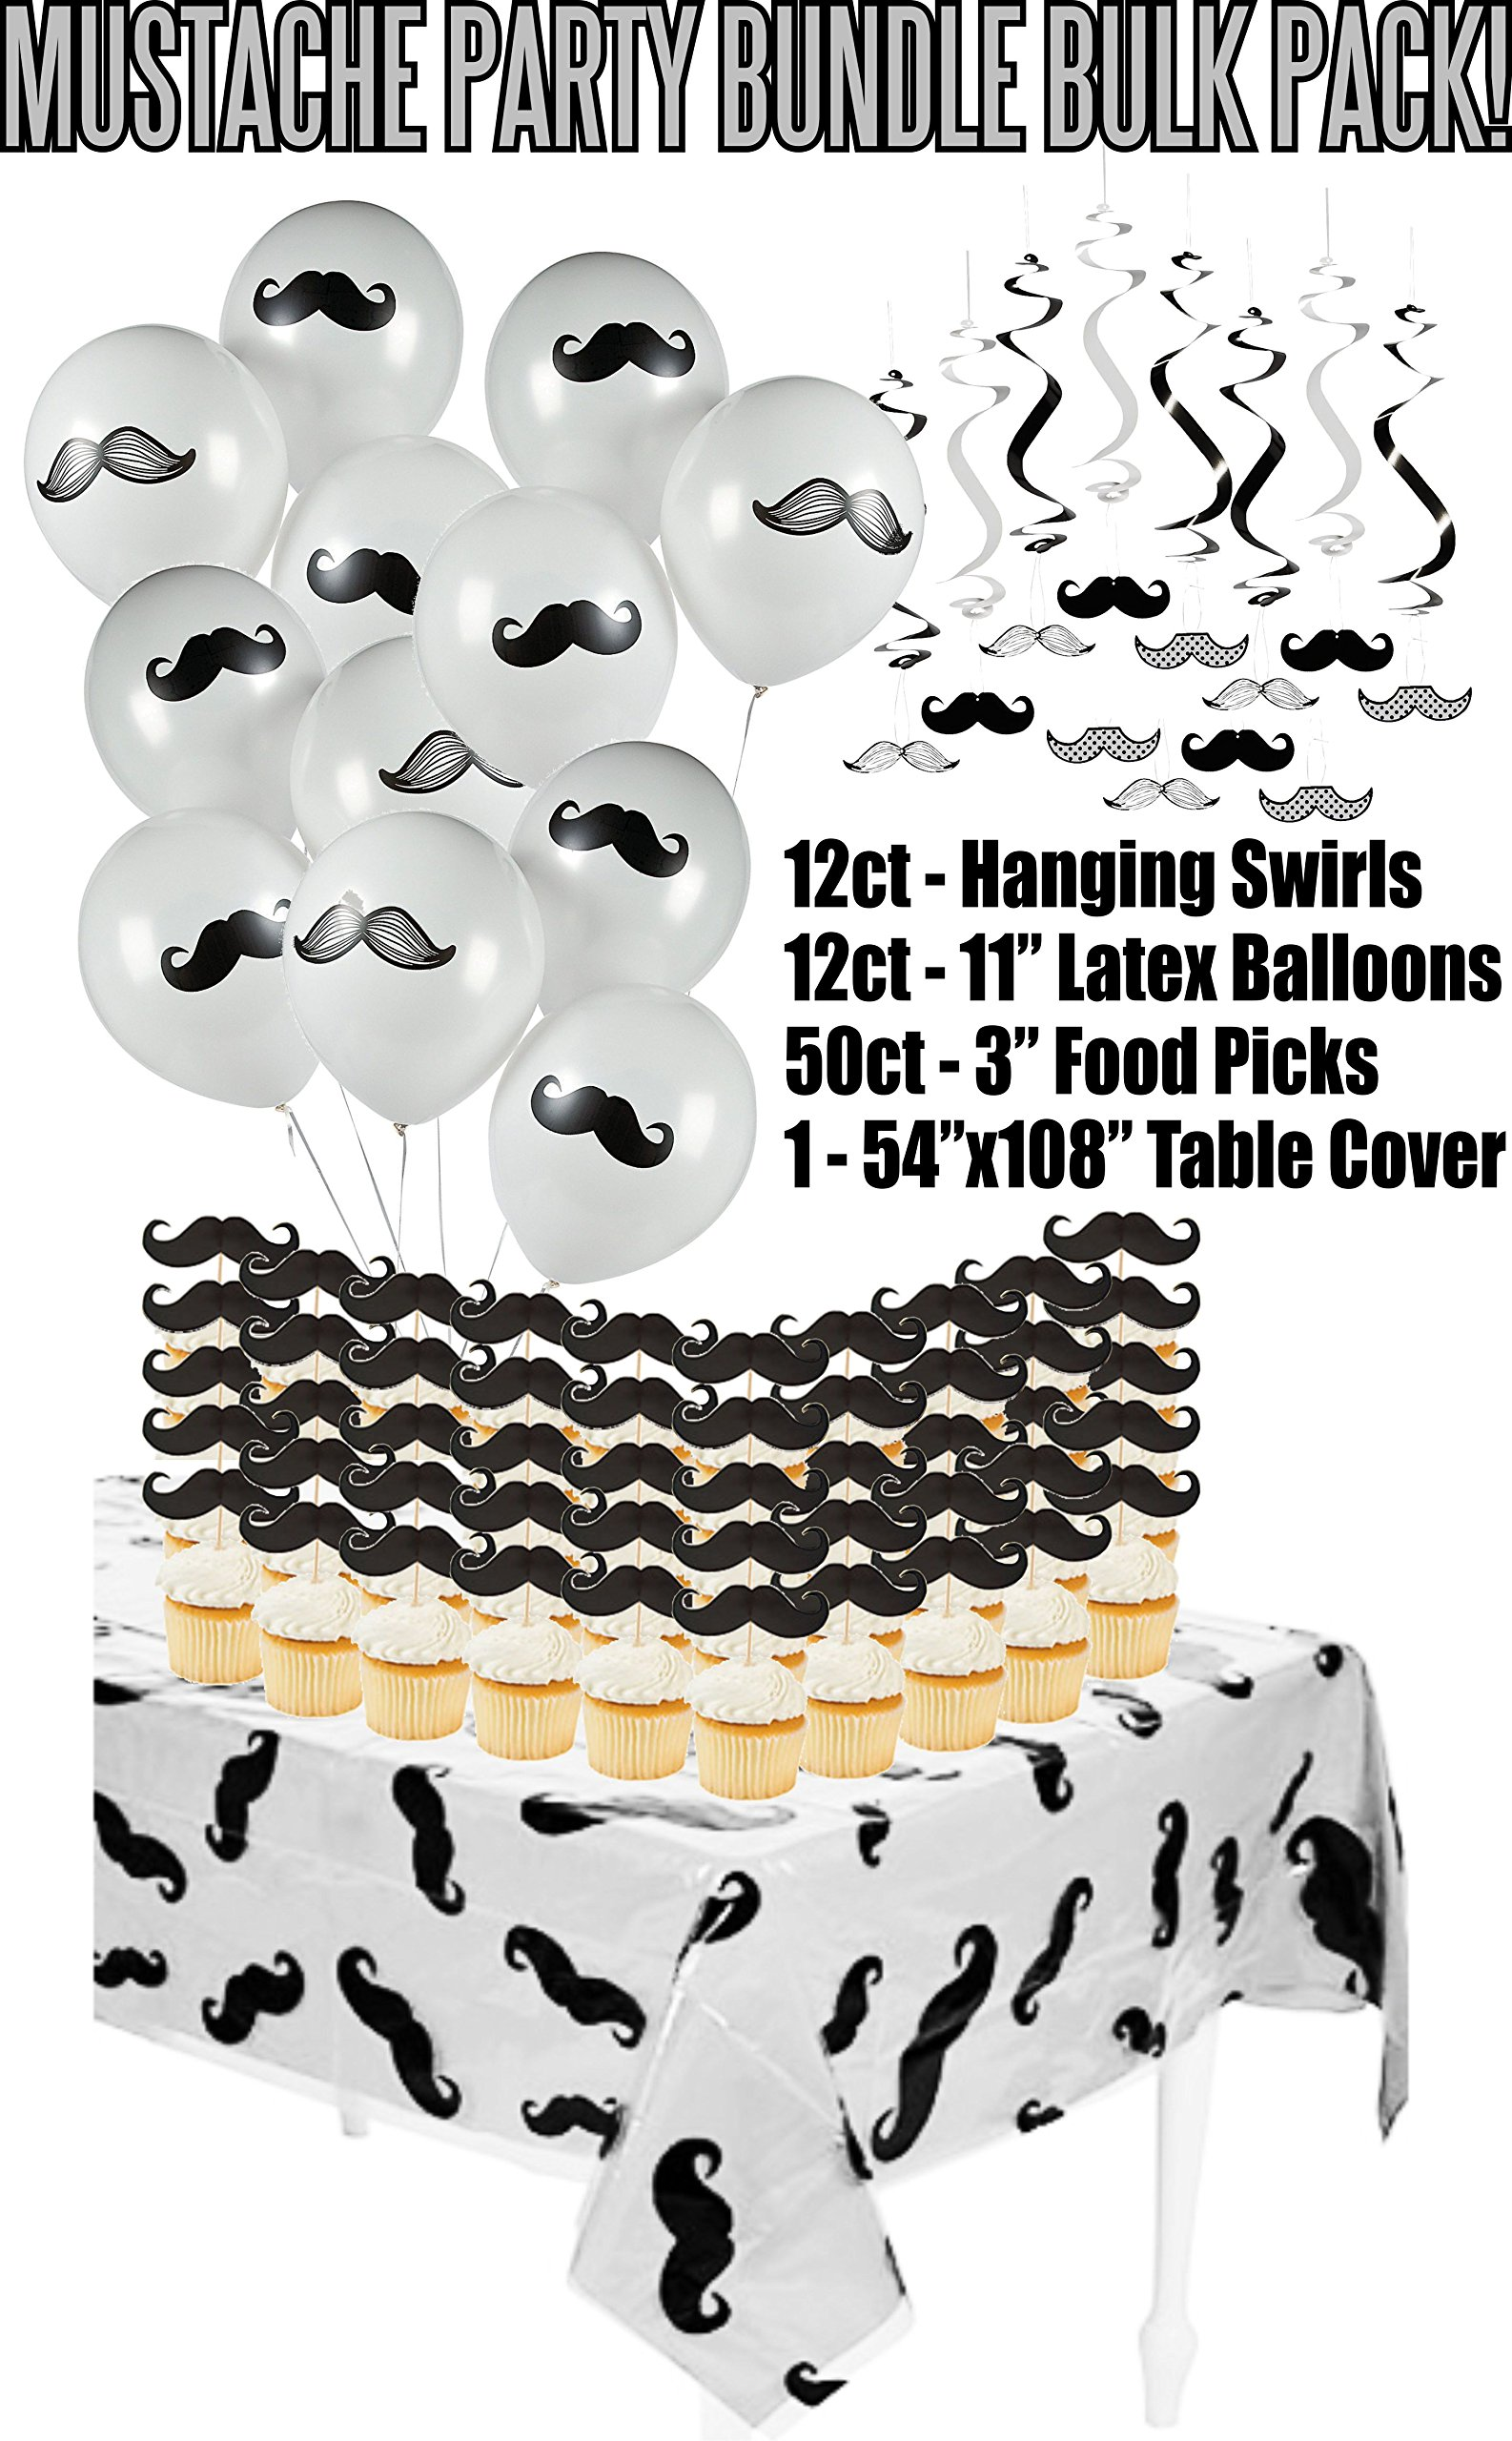 Mustache Baby Shower Birthday Party Supply Bundle Bulk Pack Includes 12 Swirl Decorations, 50 Mustache Food Picks, 12 Latex Balloons, and 1 Mustache Table Cover (BONUS! Matching Party Straw Pack)